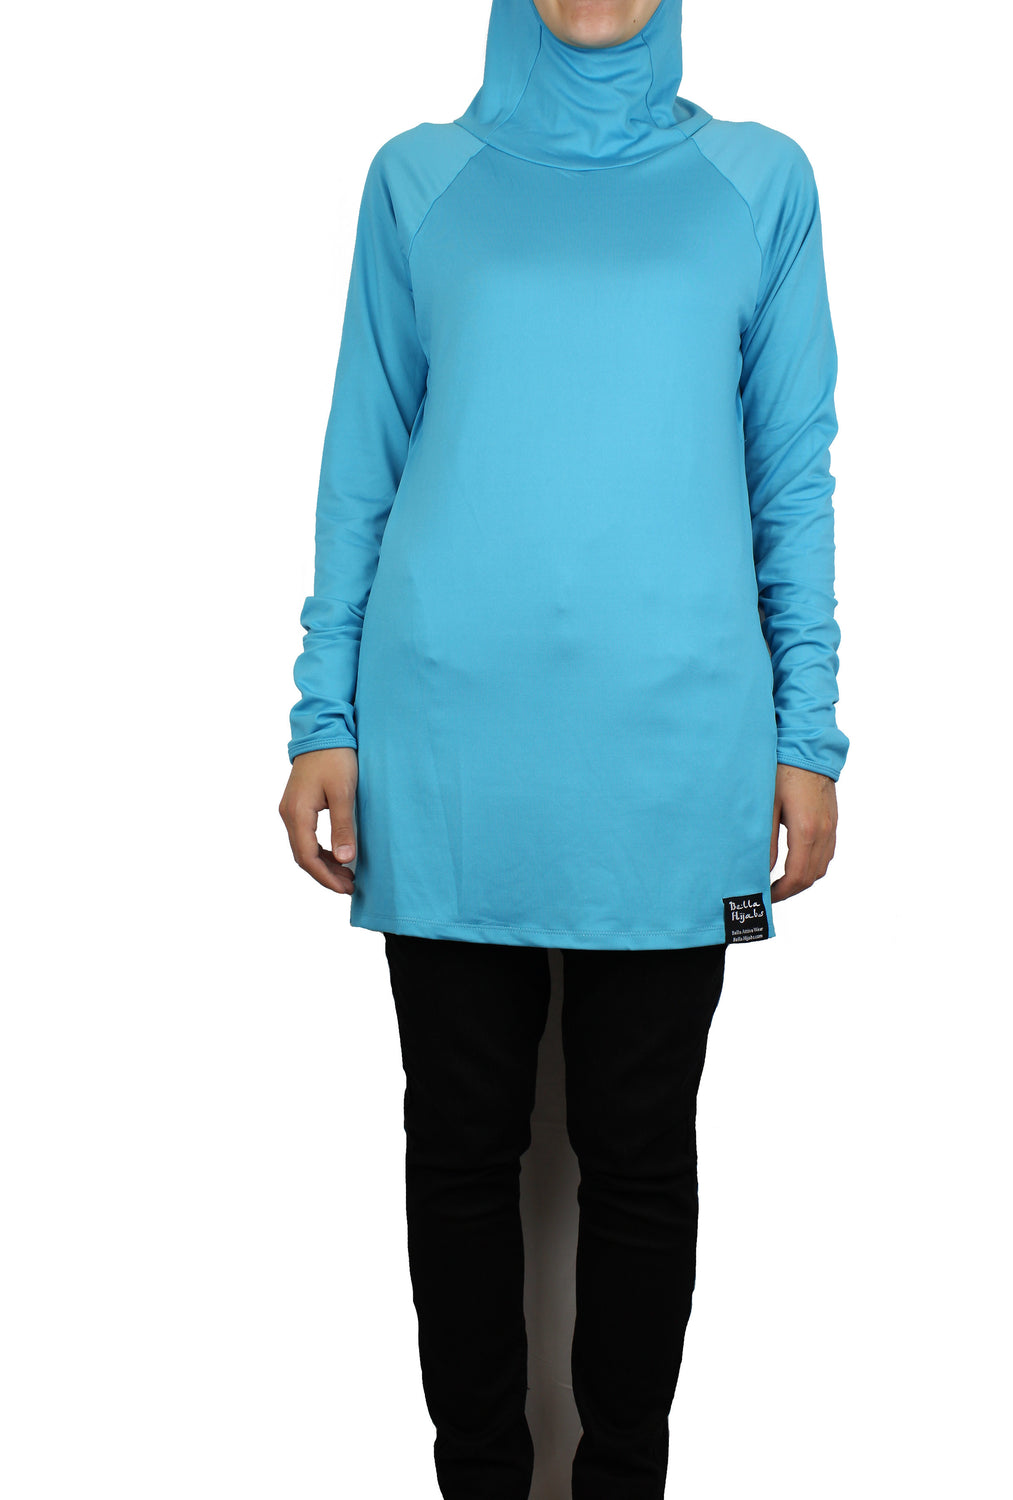 Attivo Hooded Workout Top - Blue